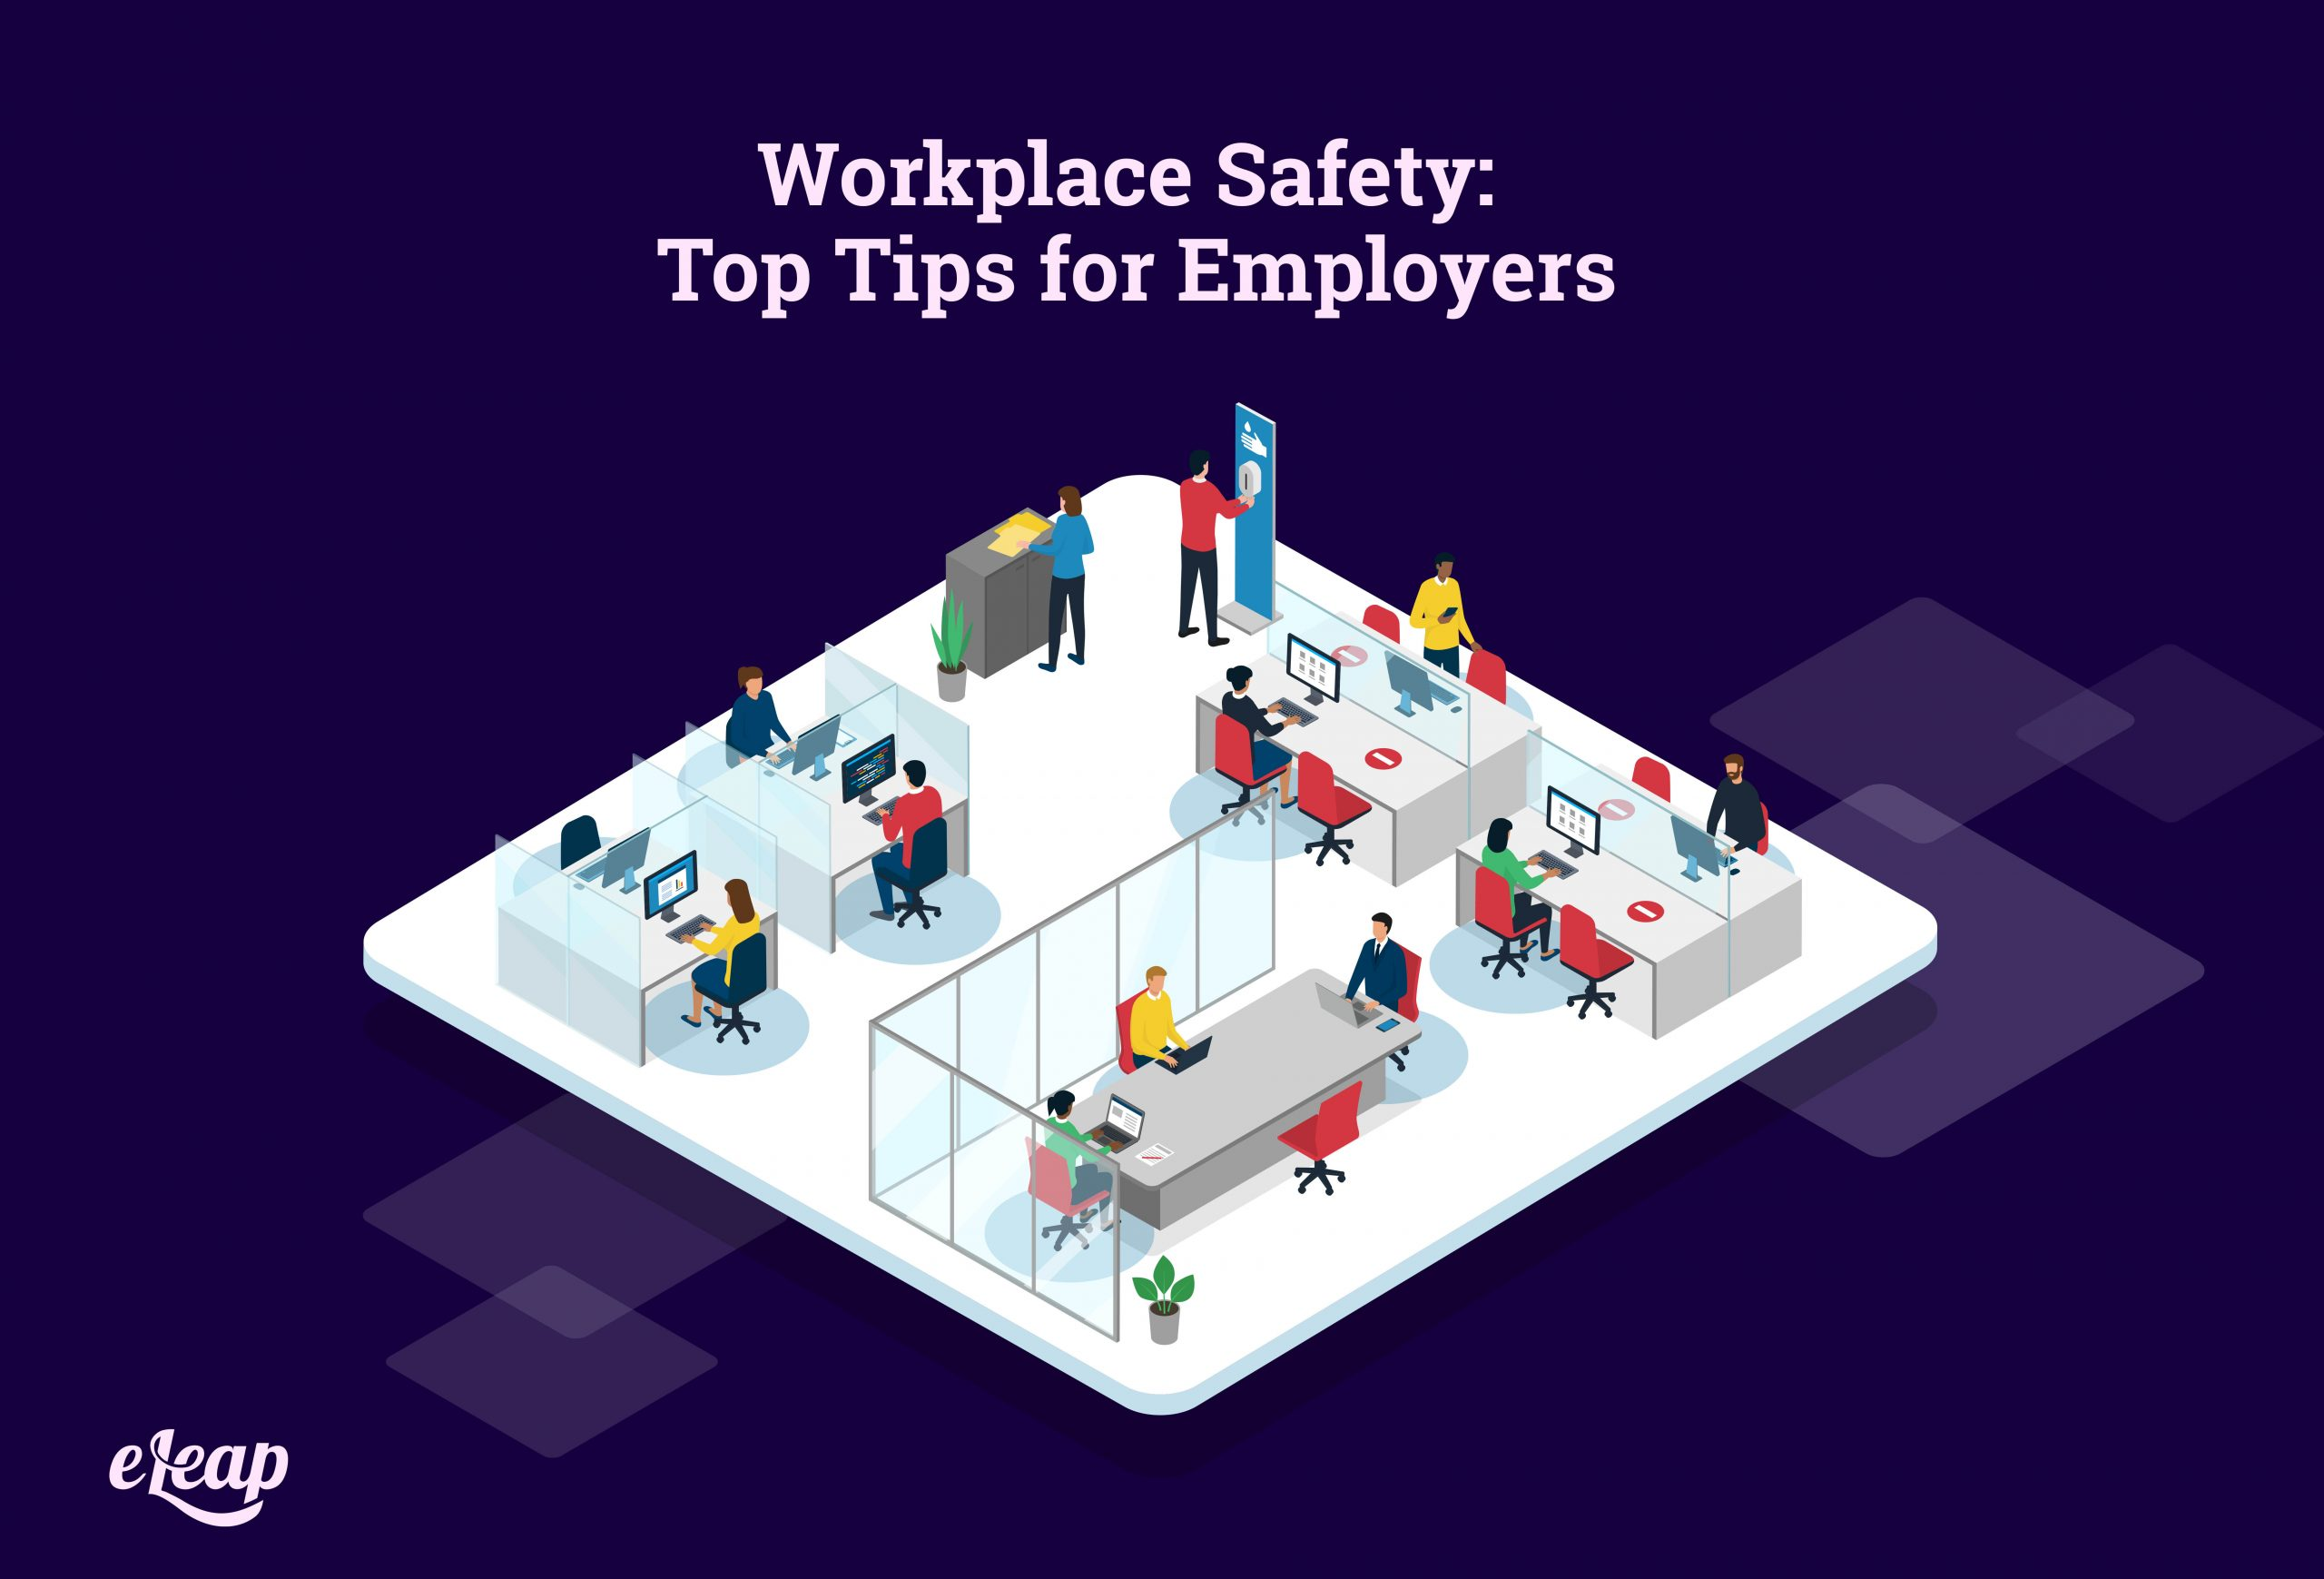 Workplace Safety: Top Tips for Employers